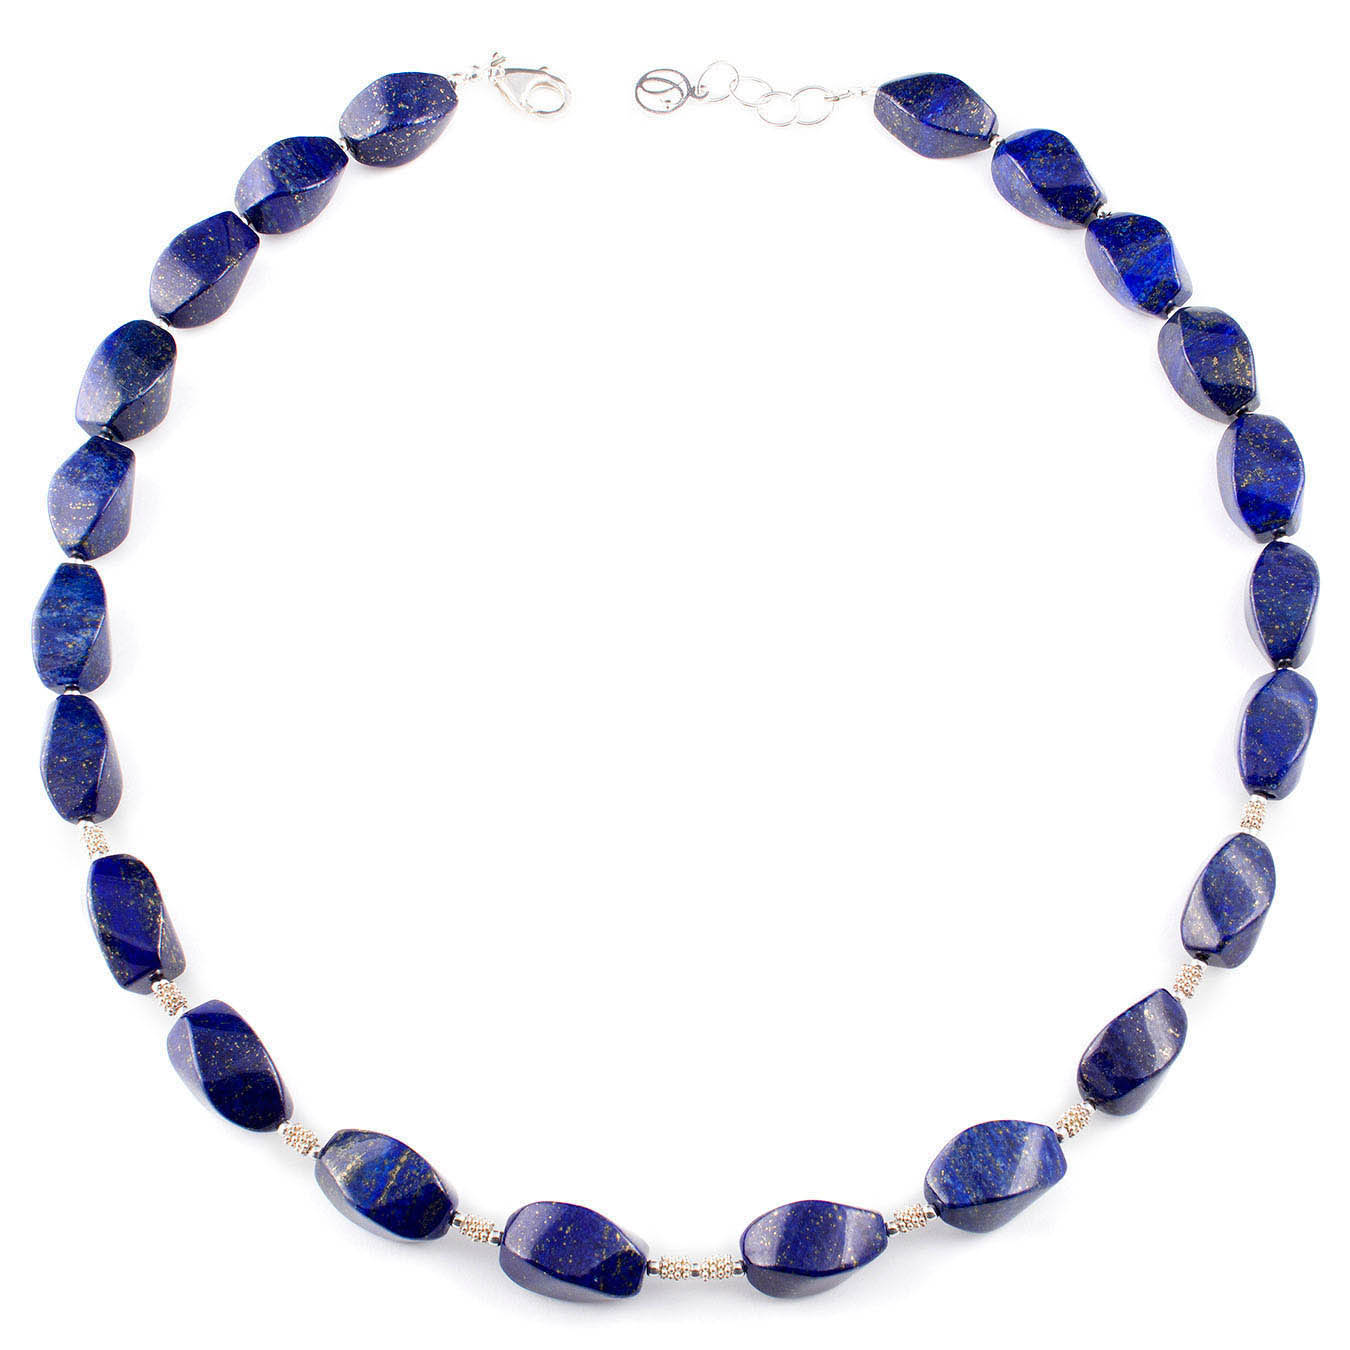 Handcrafted  bold necklace made with midnight blue lapis lazuli stones